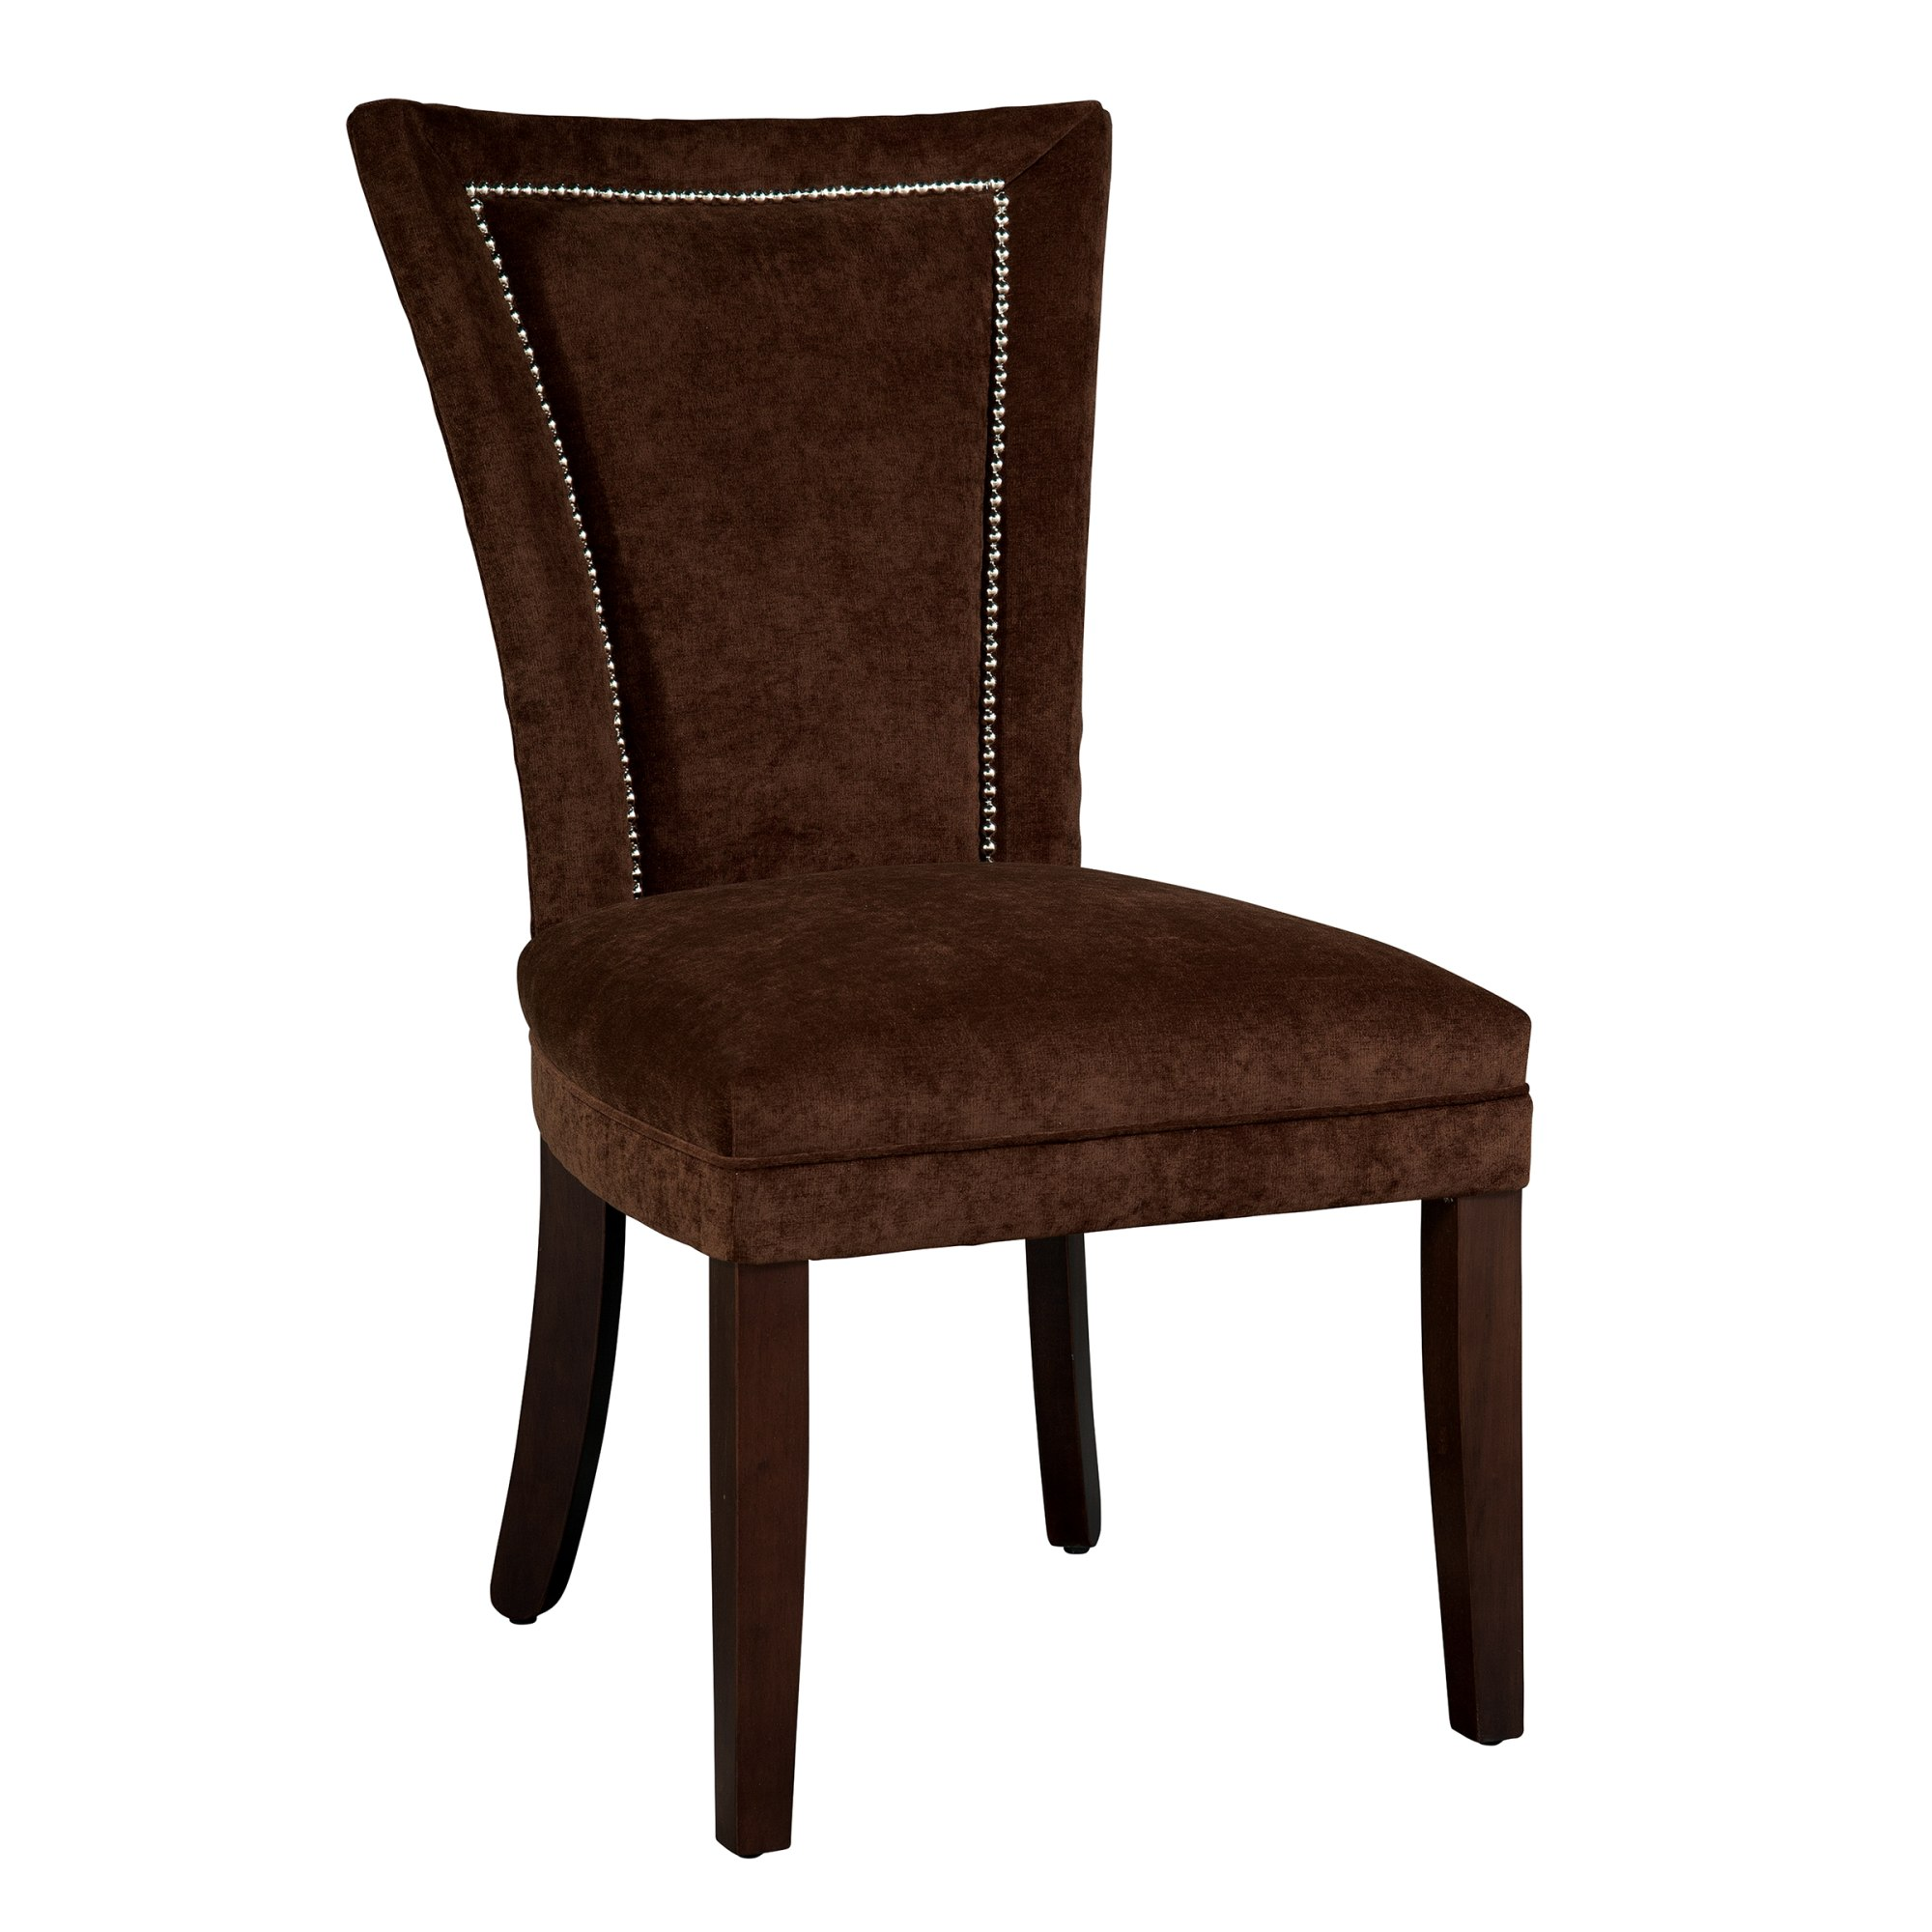 Image for 7257 Jeanette Dining Chair with Nailheads from Hekman Official Website